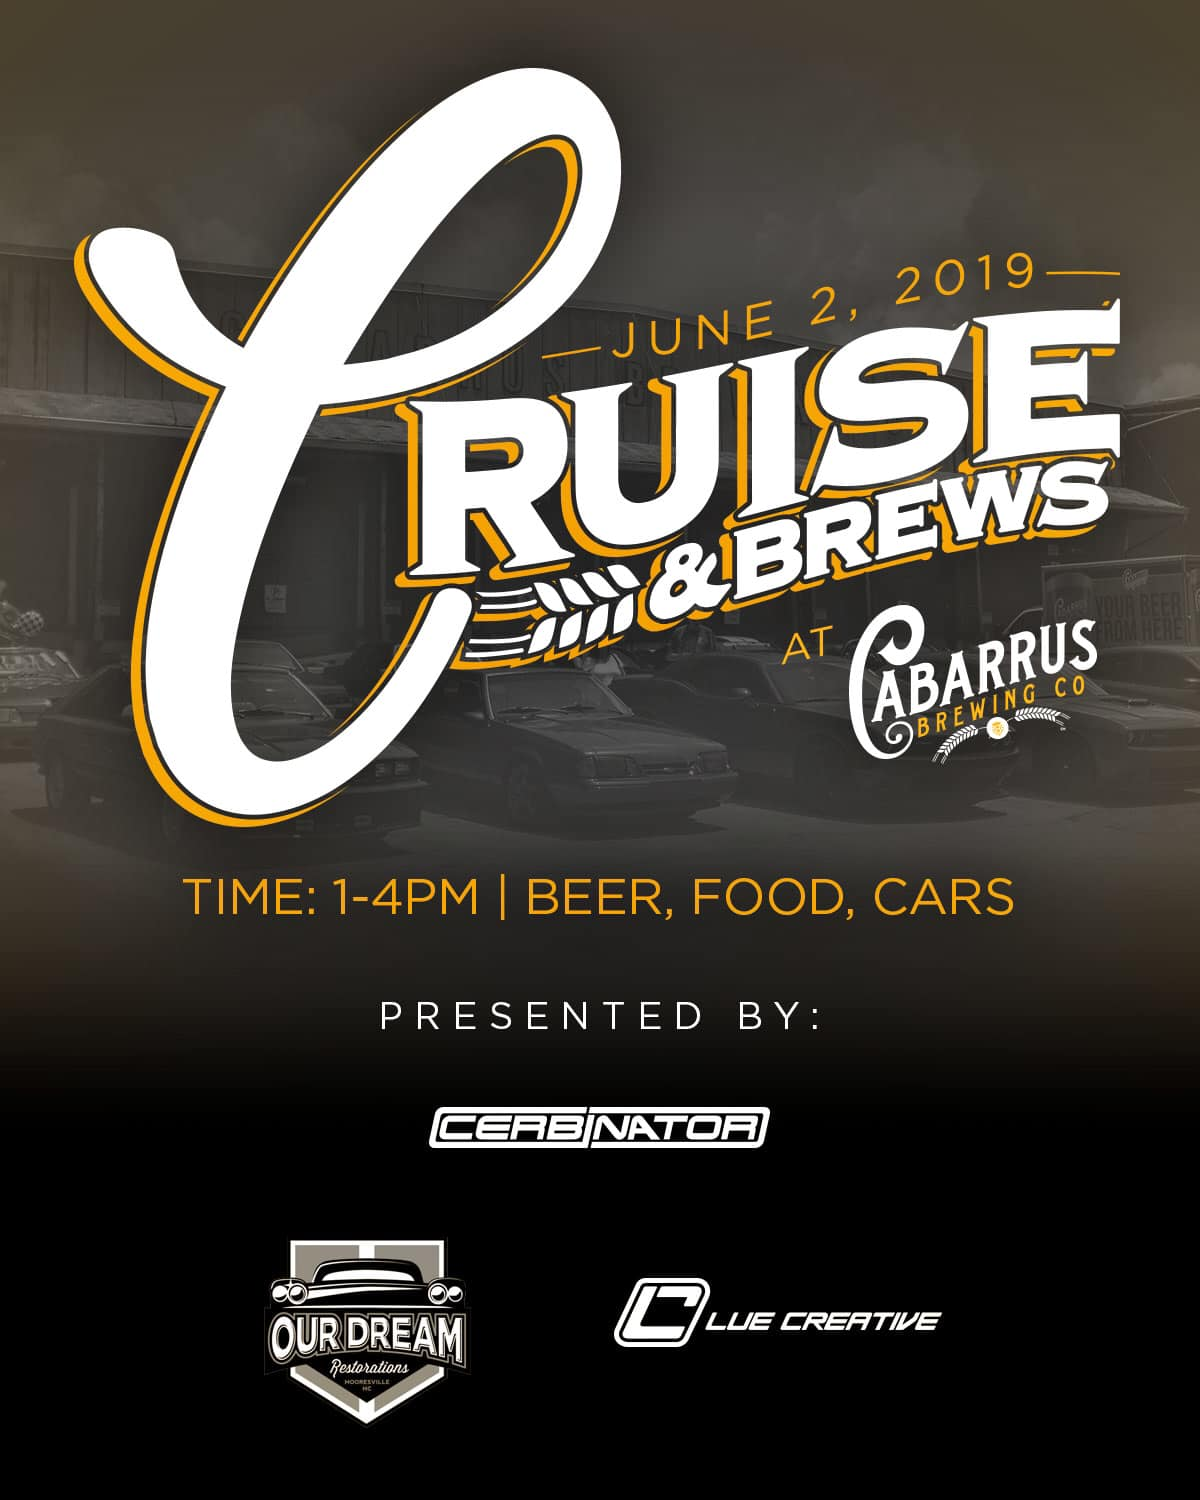 Cruise and Brews